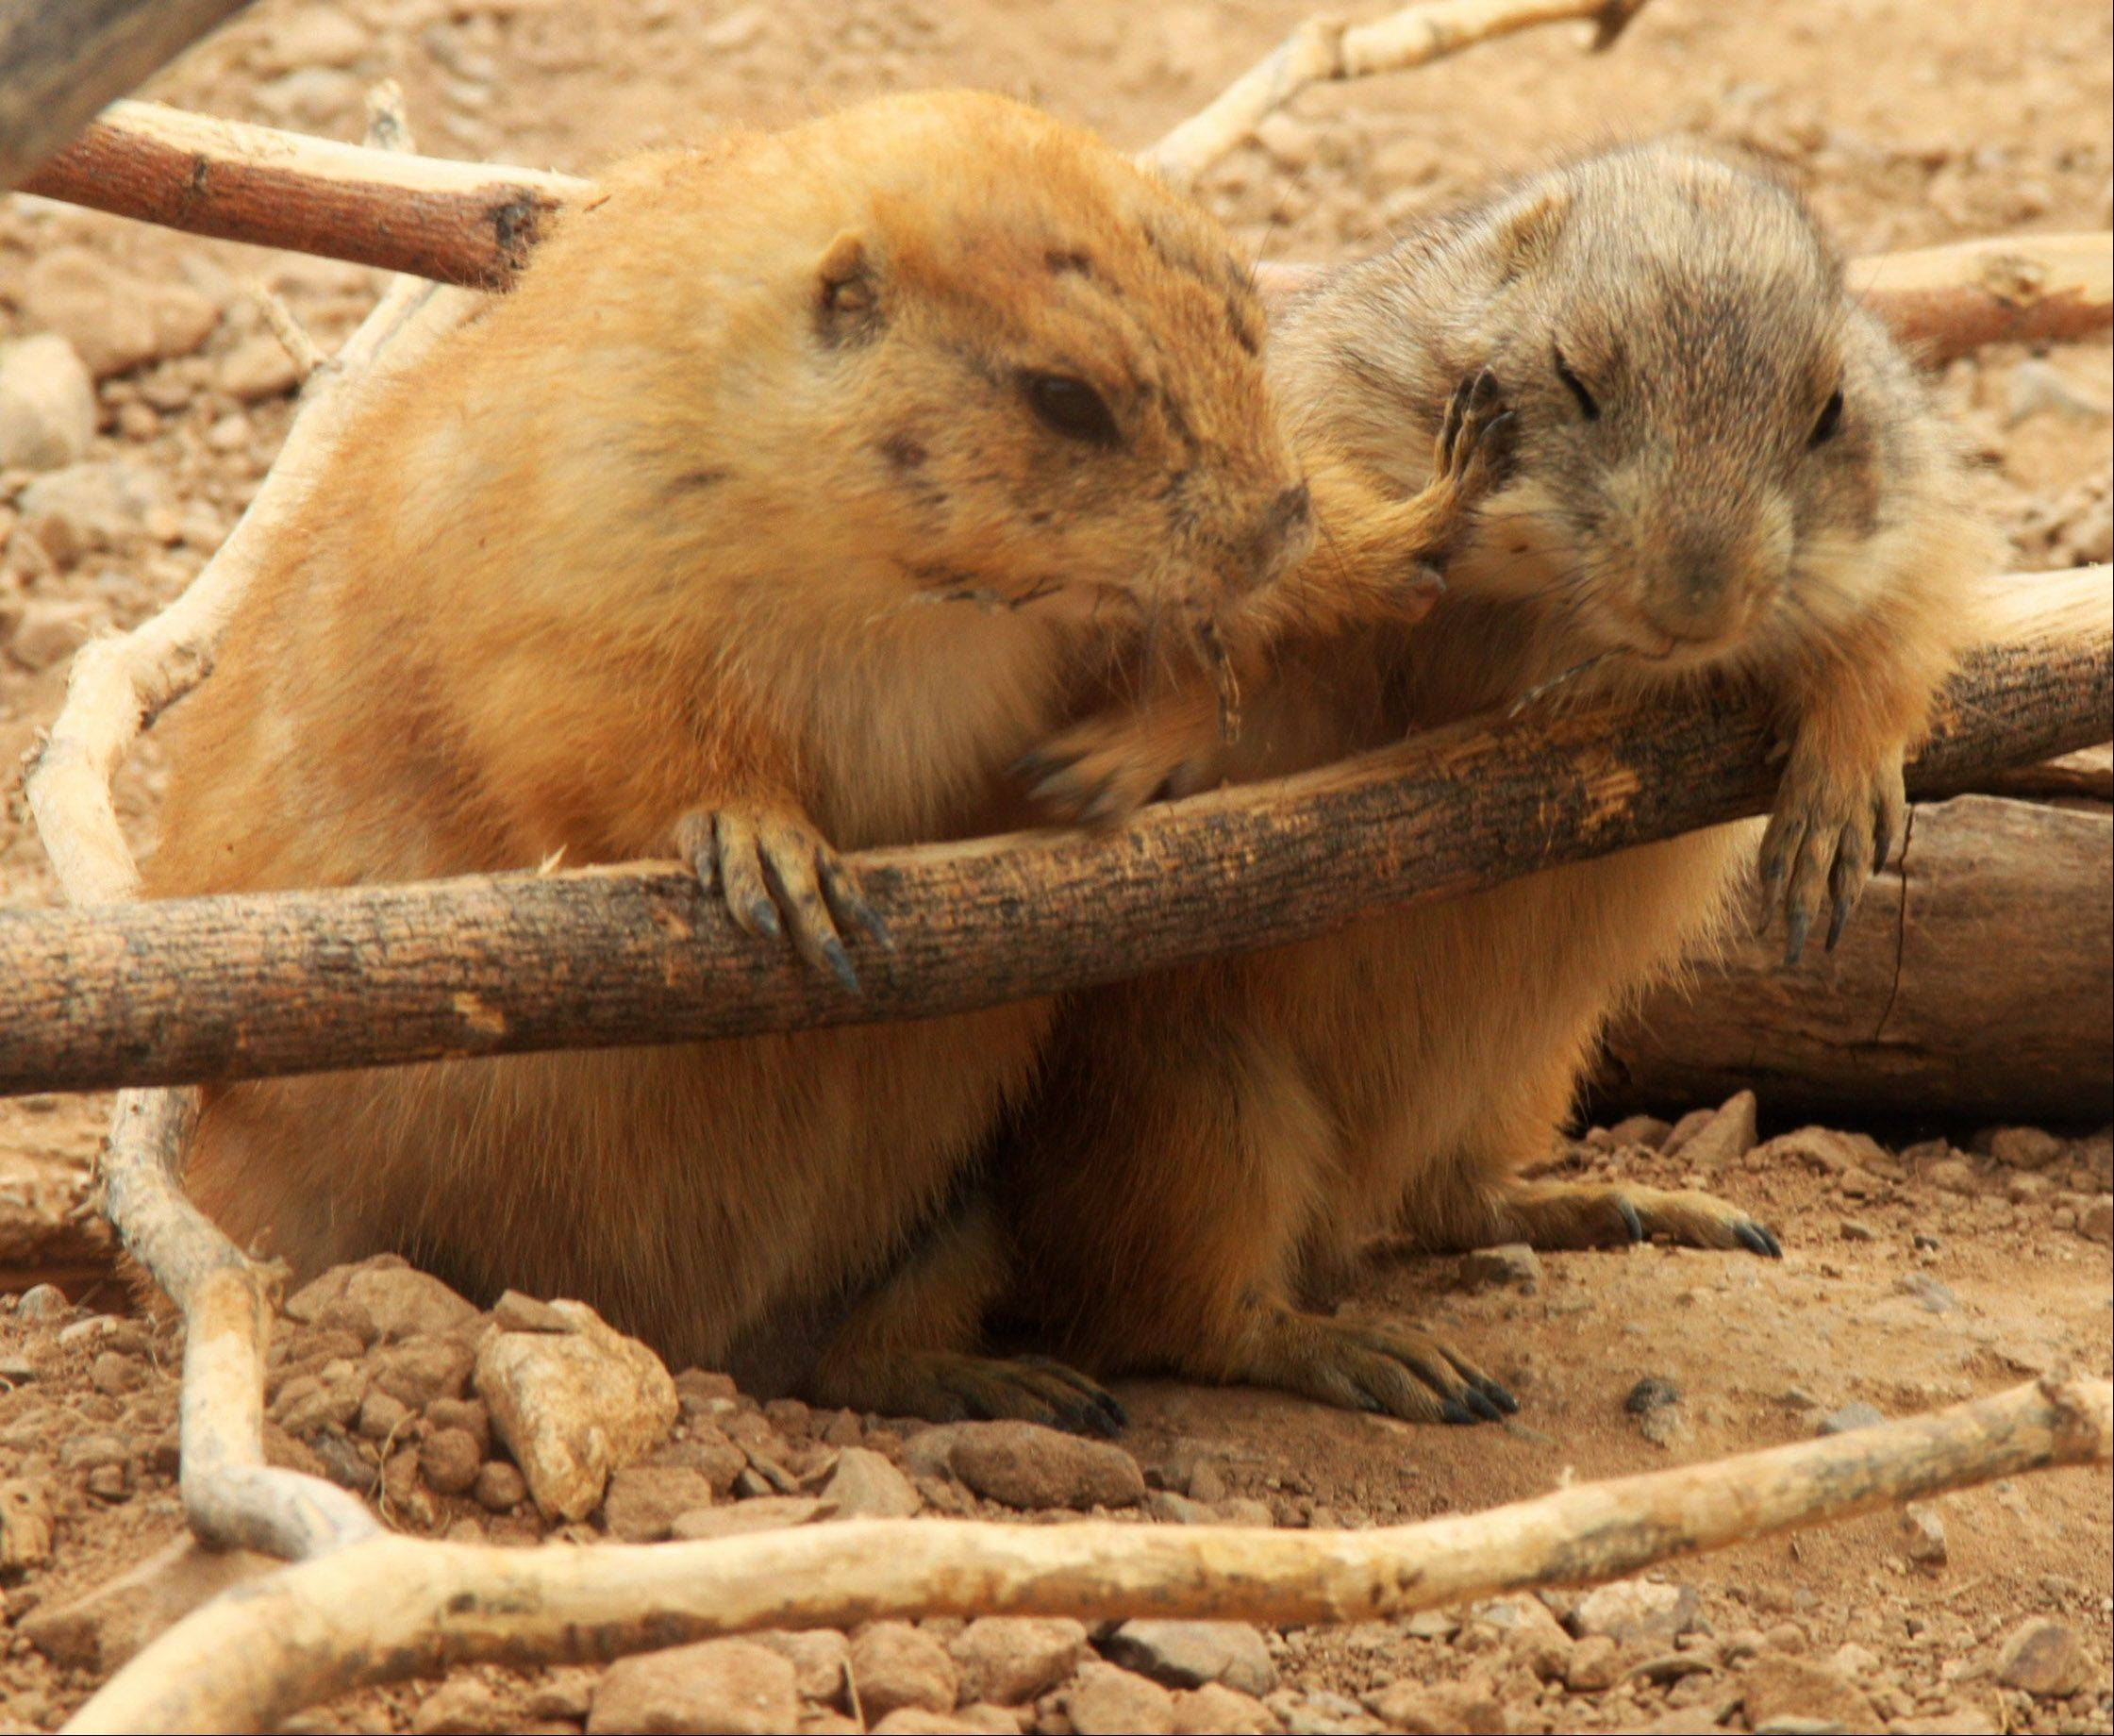 Two prairie dogs interact with each other at the Arizona Sonoran Desert Museum in Tucson, Arizona.